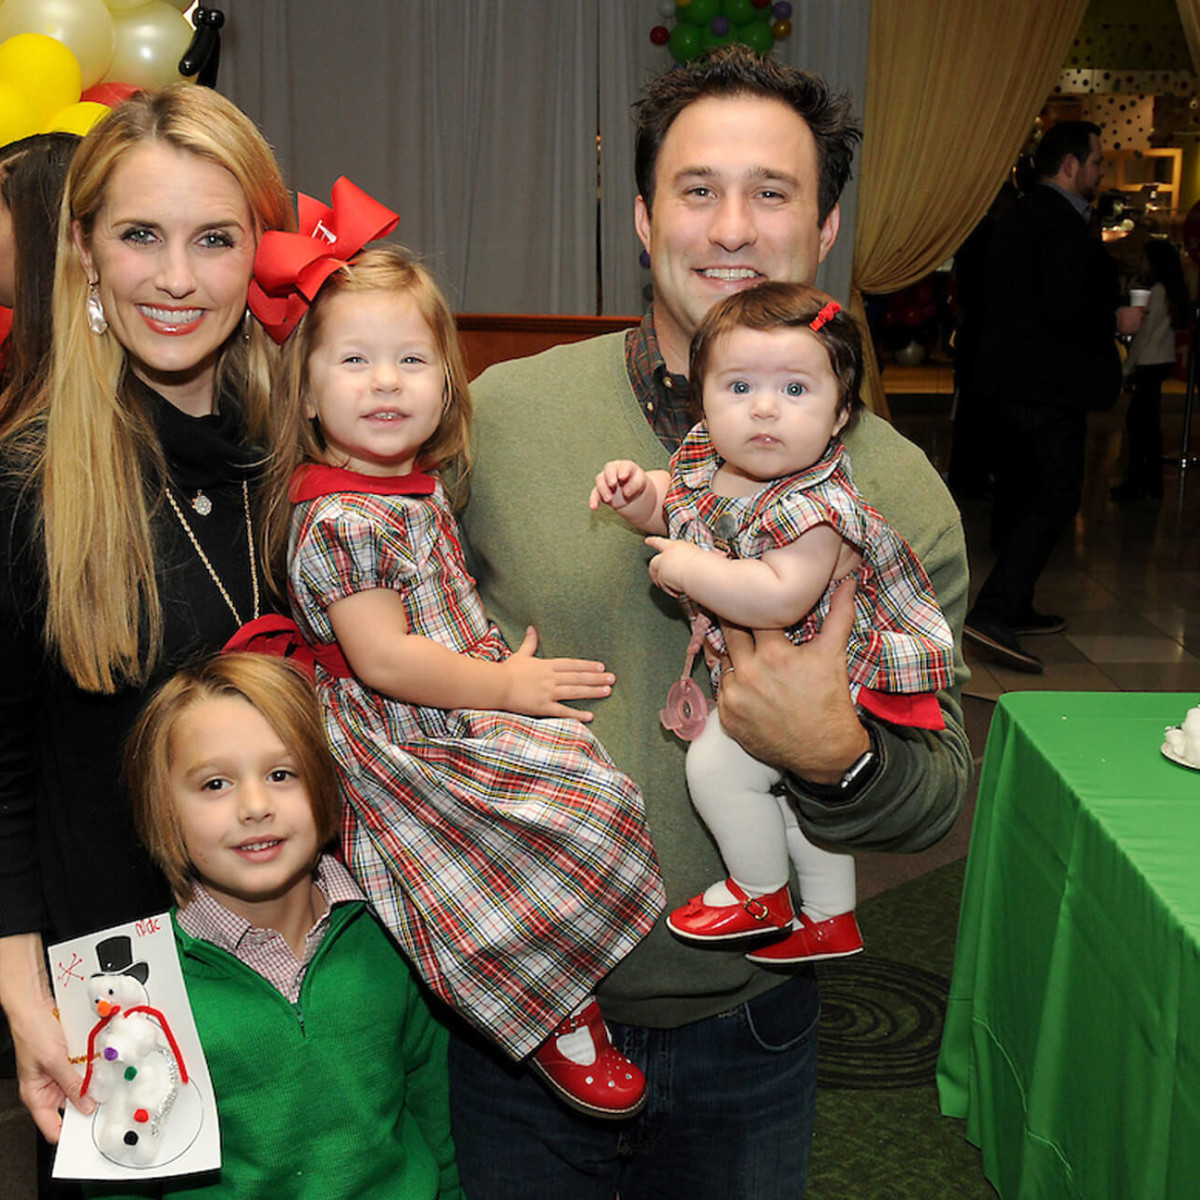 Houston, M.D. Anderson Breakfast with Santa, Dec 2016, Laine Santamaria, Mac Santamaria, Edie Santamaria, David Santamaria, Annie Santamaria